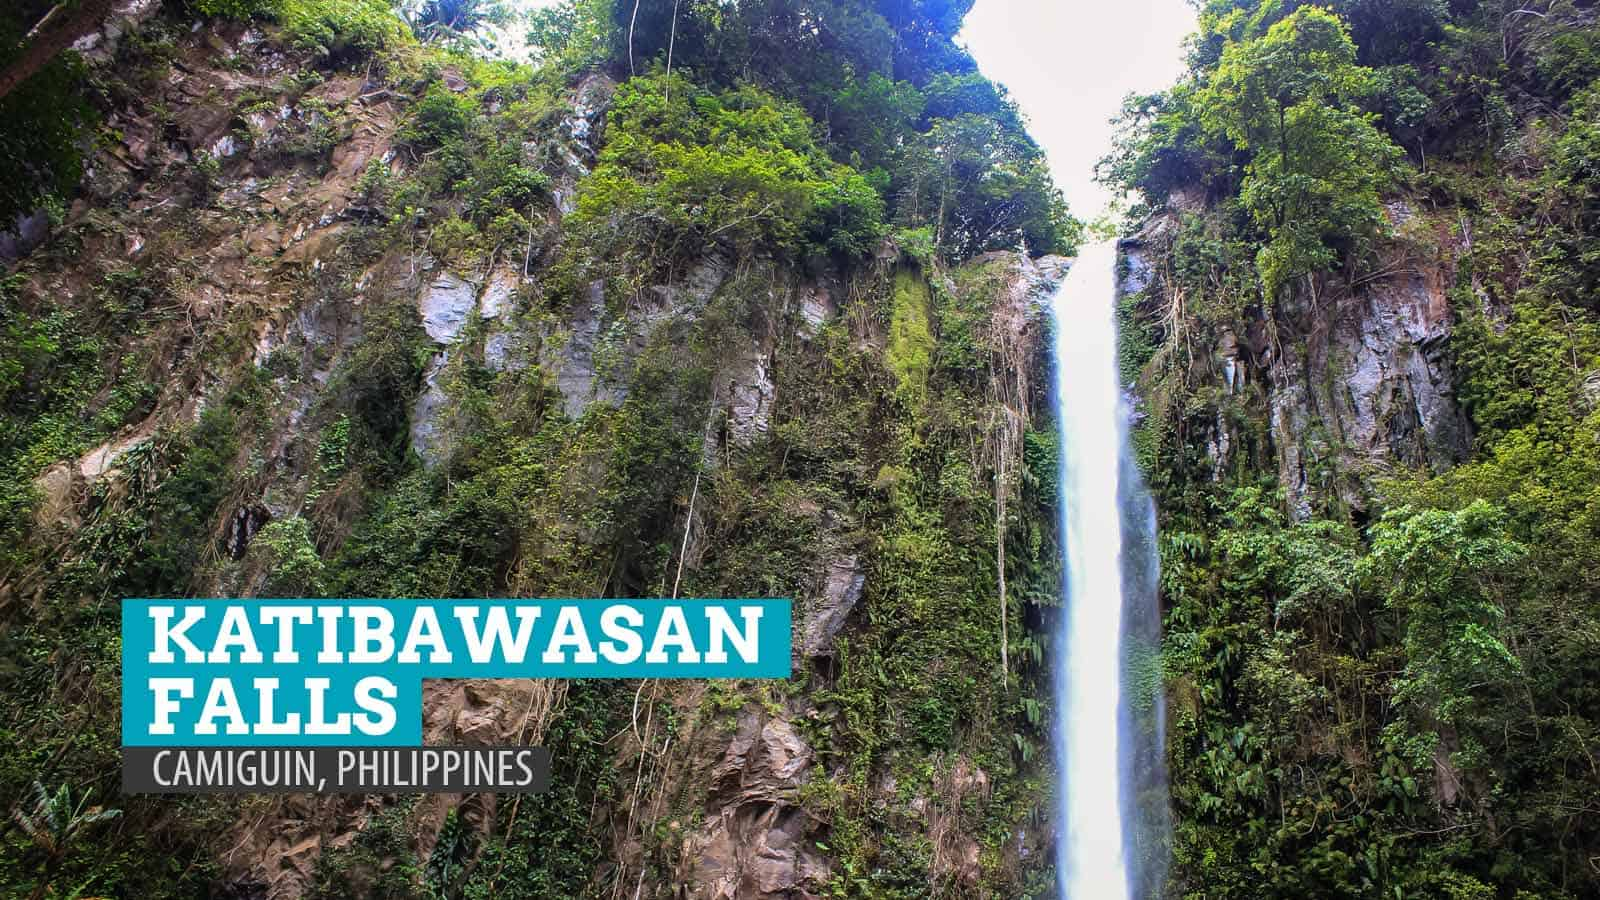 KATIBAWASAN FALLS: A Splash of Nature in Camiguin, Philippines